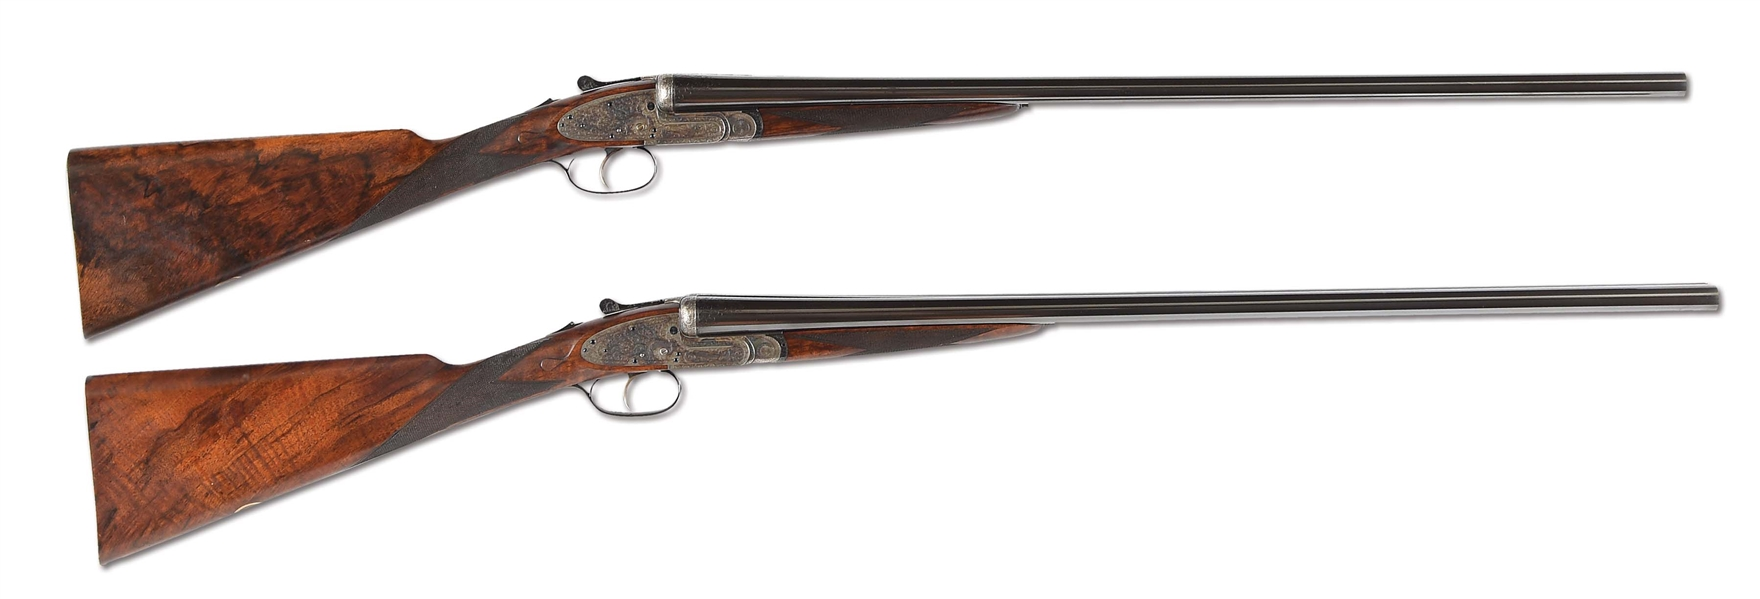 "(C) LOVELY PAIR OF 16 GAUGE CHURCHILL ""PREMIERE"" LONG BARRELED EASY OPENING, SIDELOCK EJECTOR, SELECTIVE SINGLE TRIGGER SHOTGUNS IN THEIR ORIGINAL VC 2-GUN CASE WITH ACCESSORIES"